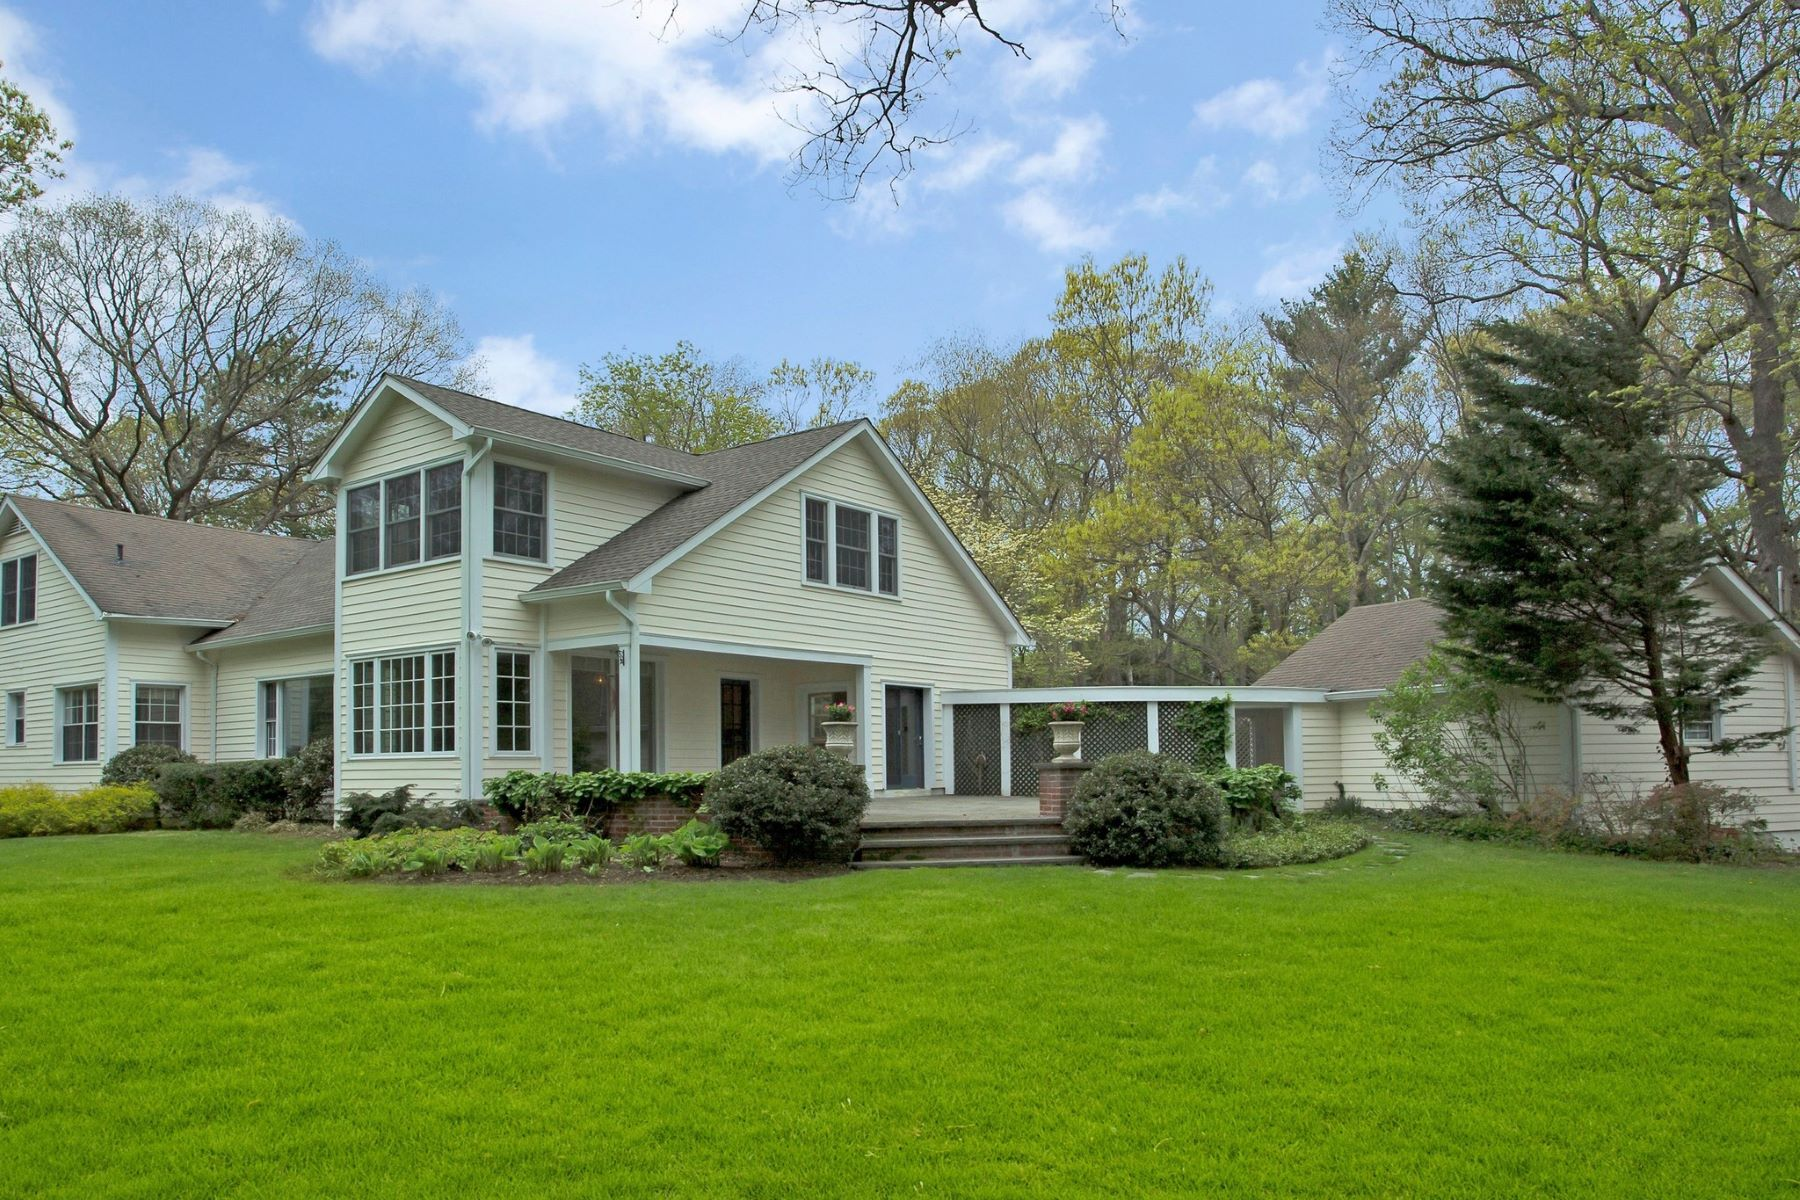 Single Family Homes for Sale at Locust Valley 820 Chicken Valley Rd Locust Valley, New York 11560 United States